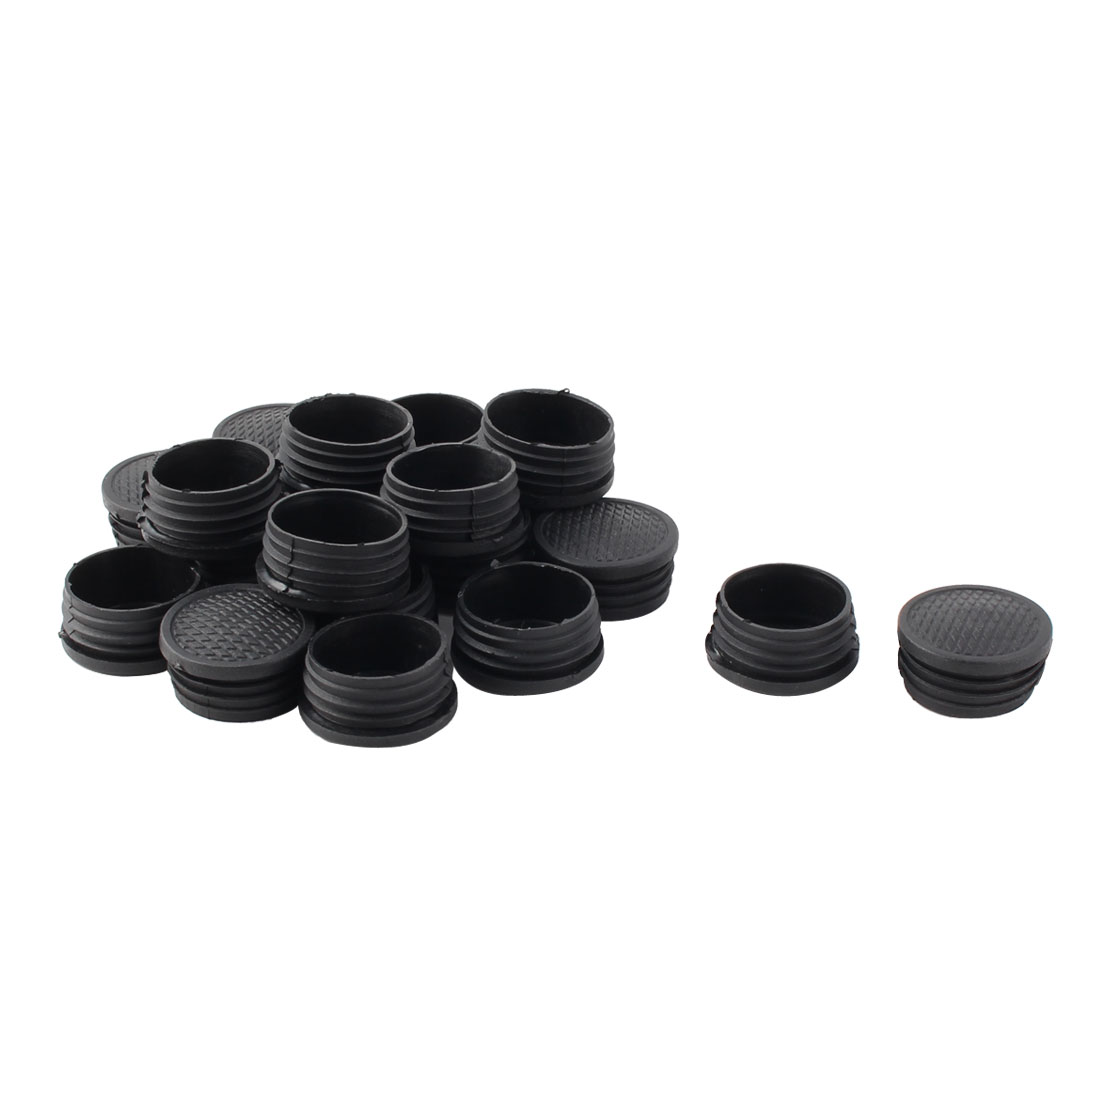 Plastic Round Tube Insert Blanking End Protectors Caps Black 42mm 20 PCS